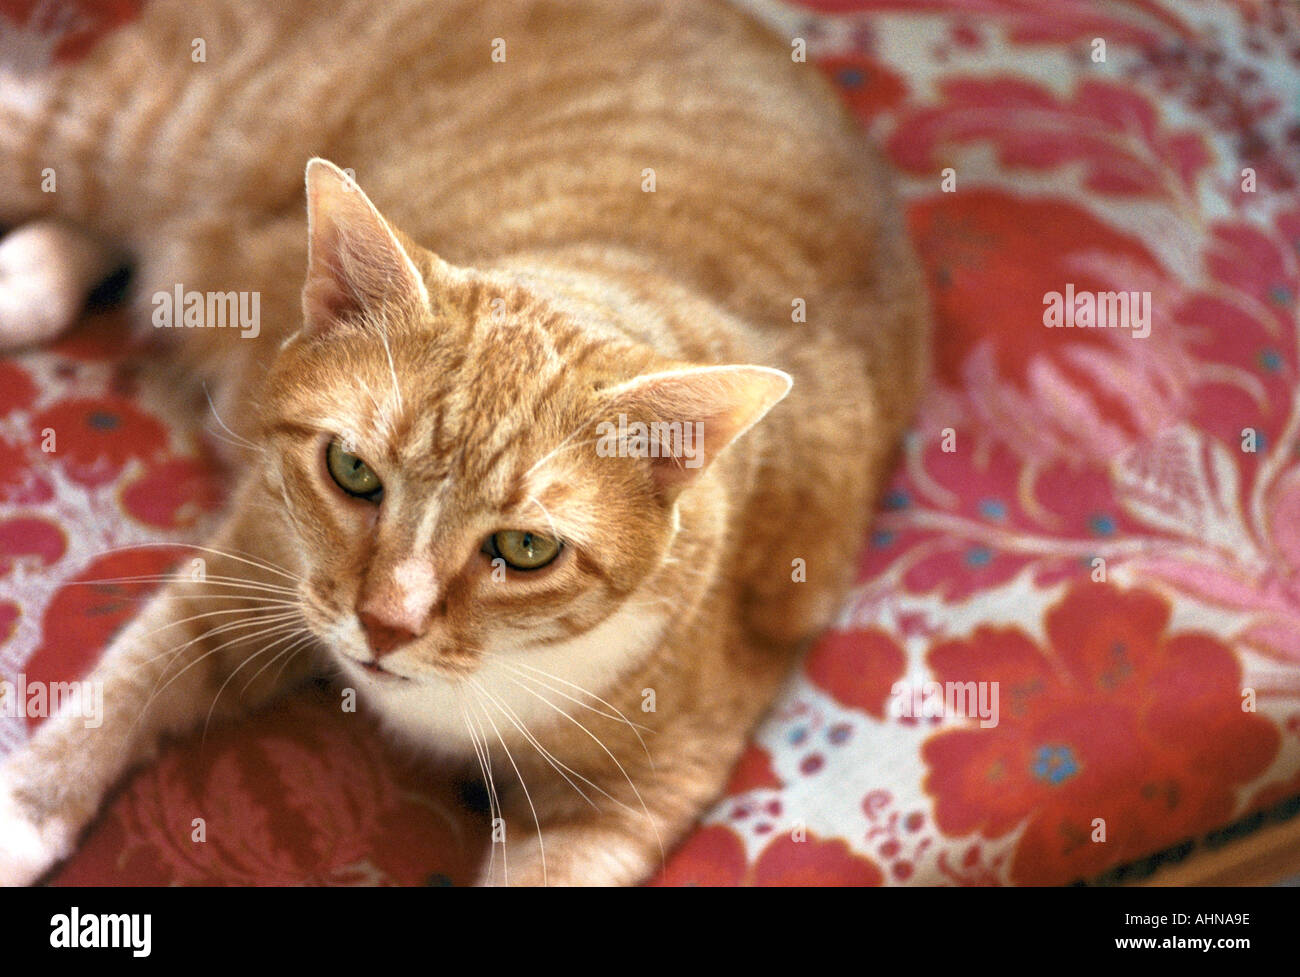 CAT ON A CHAIR - Stock Image